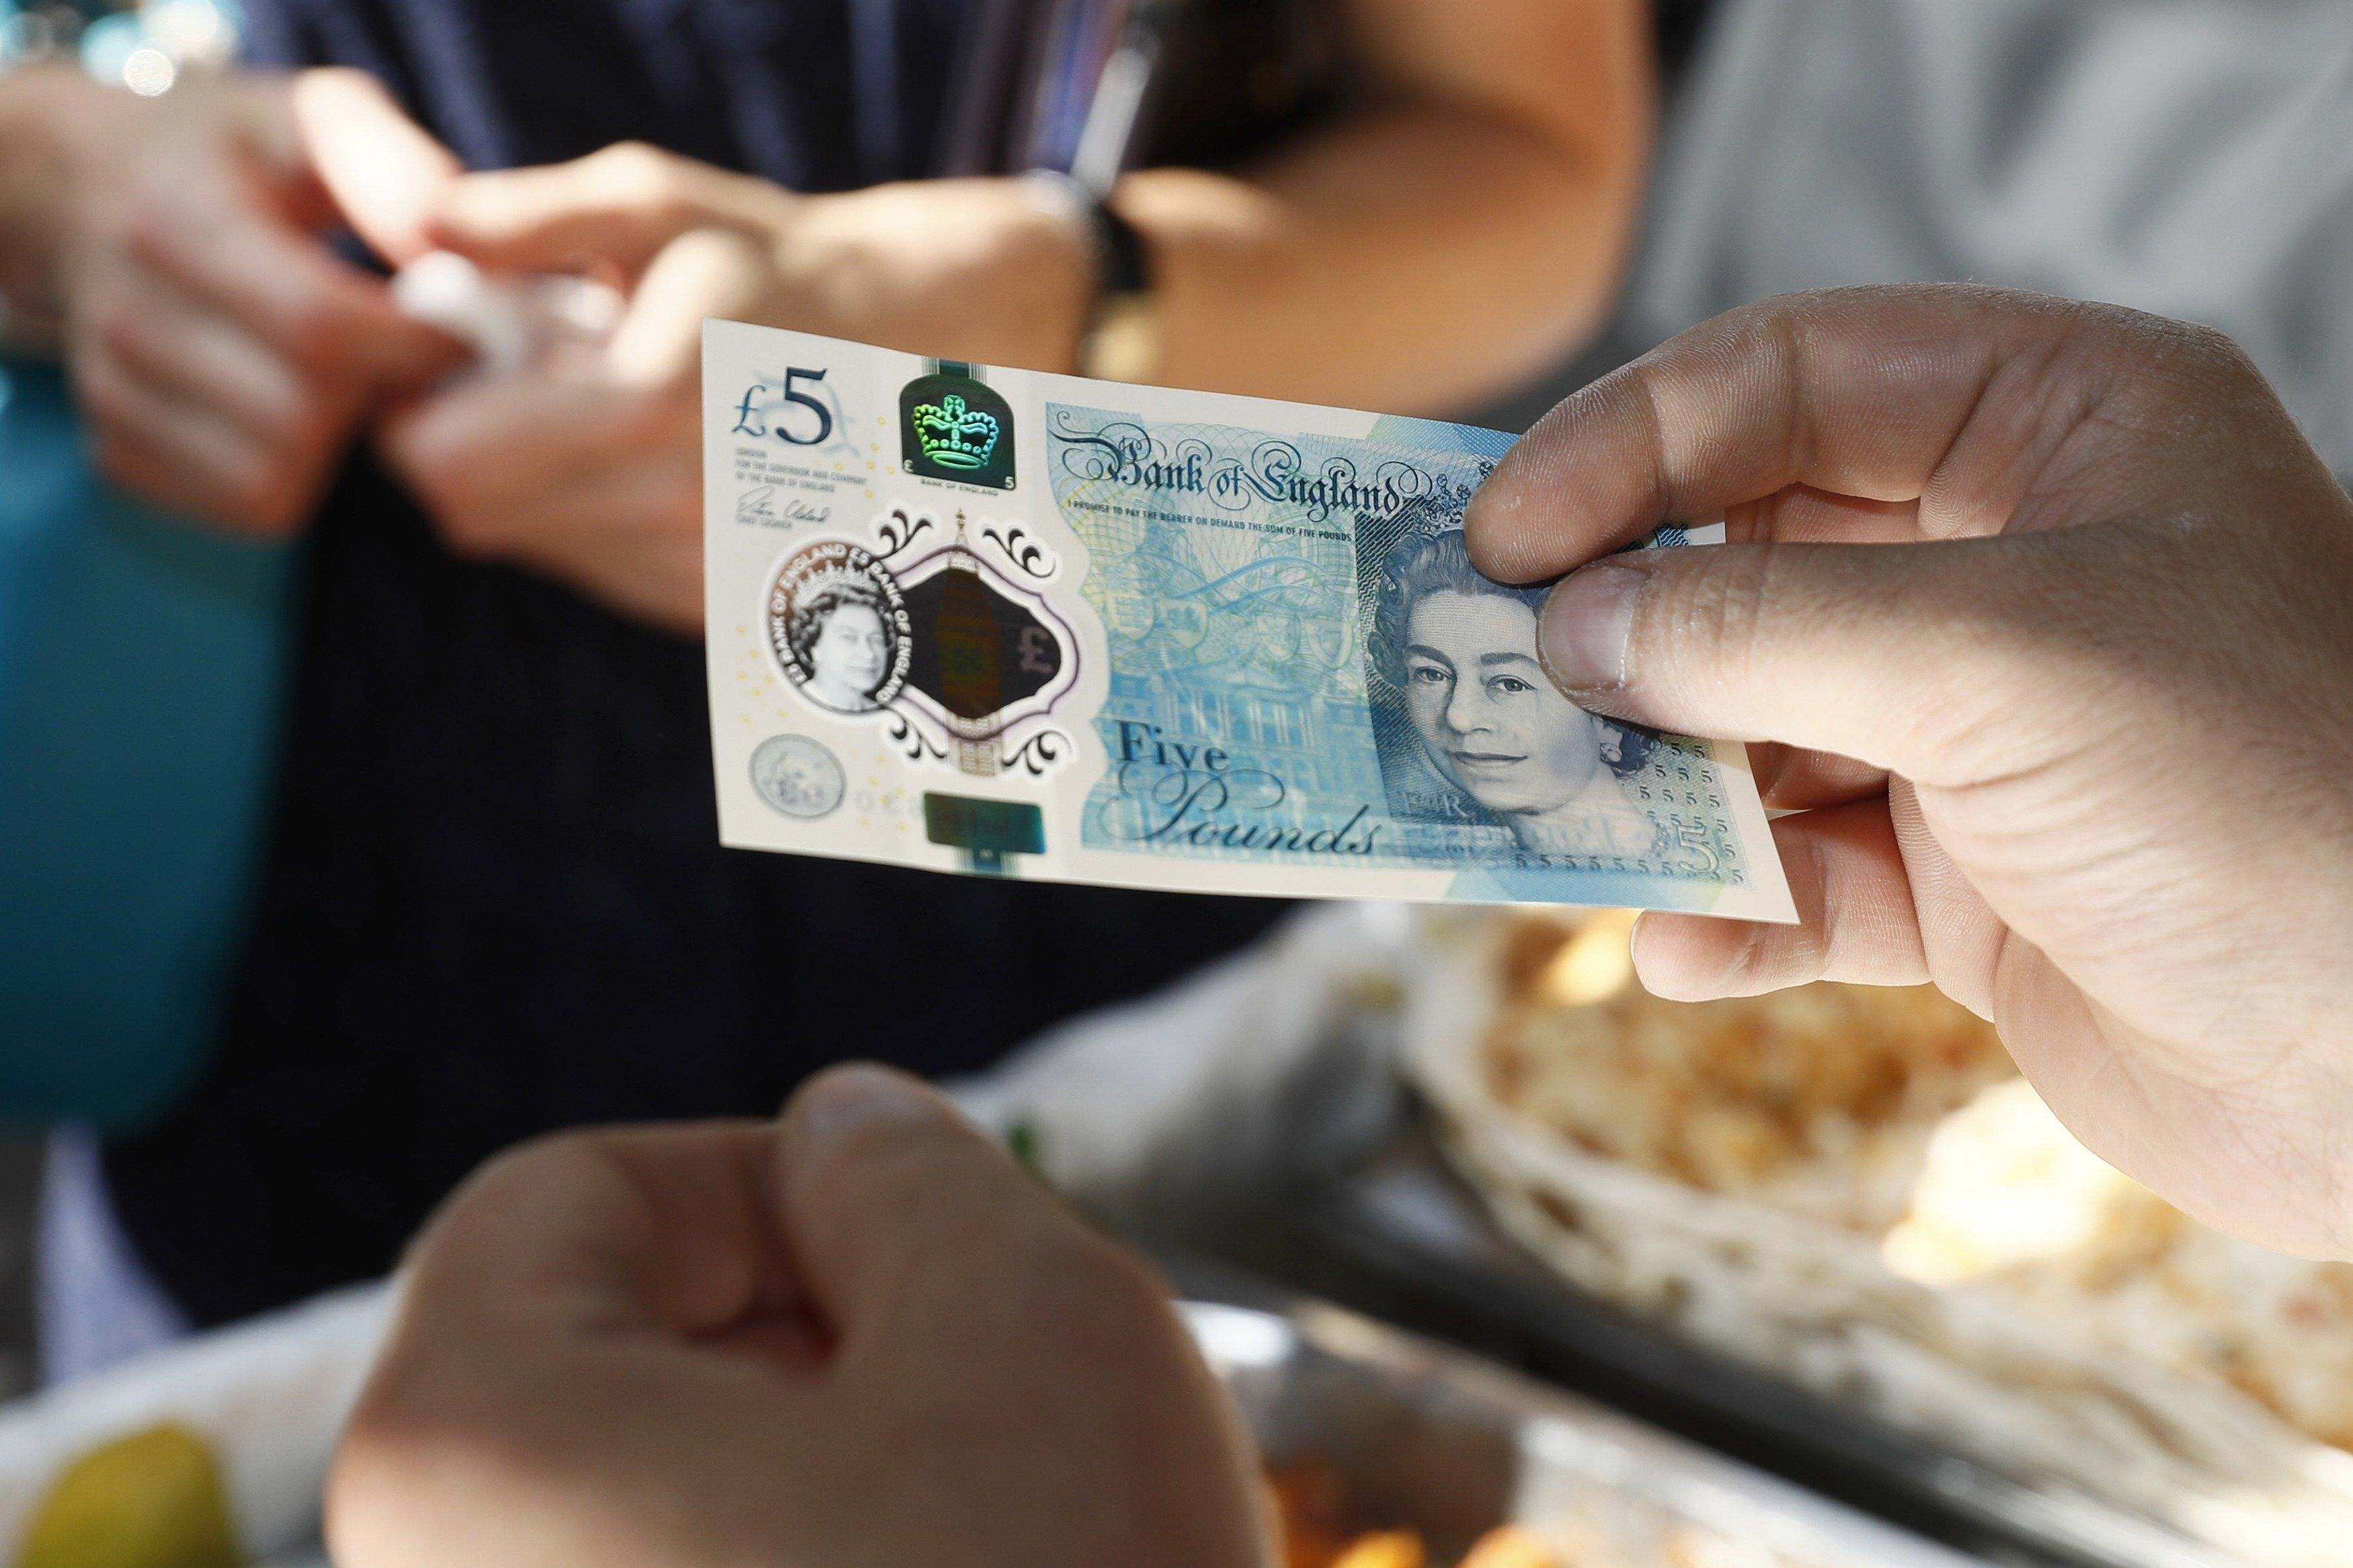 Inventor Behind New Fivers Says Being Upset Over Non-Vegan Notes Is 'Absolutely